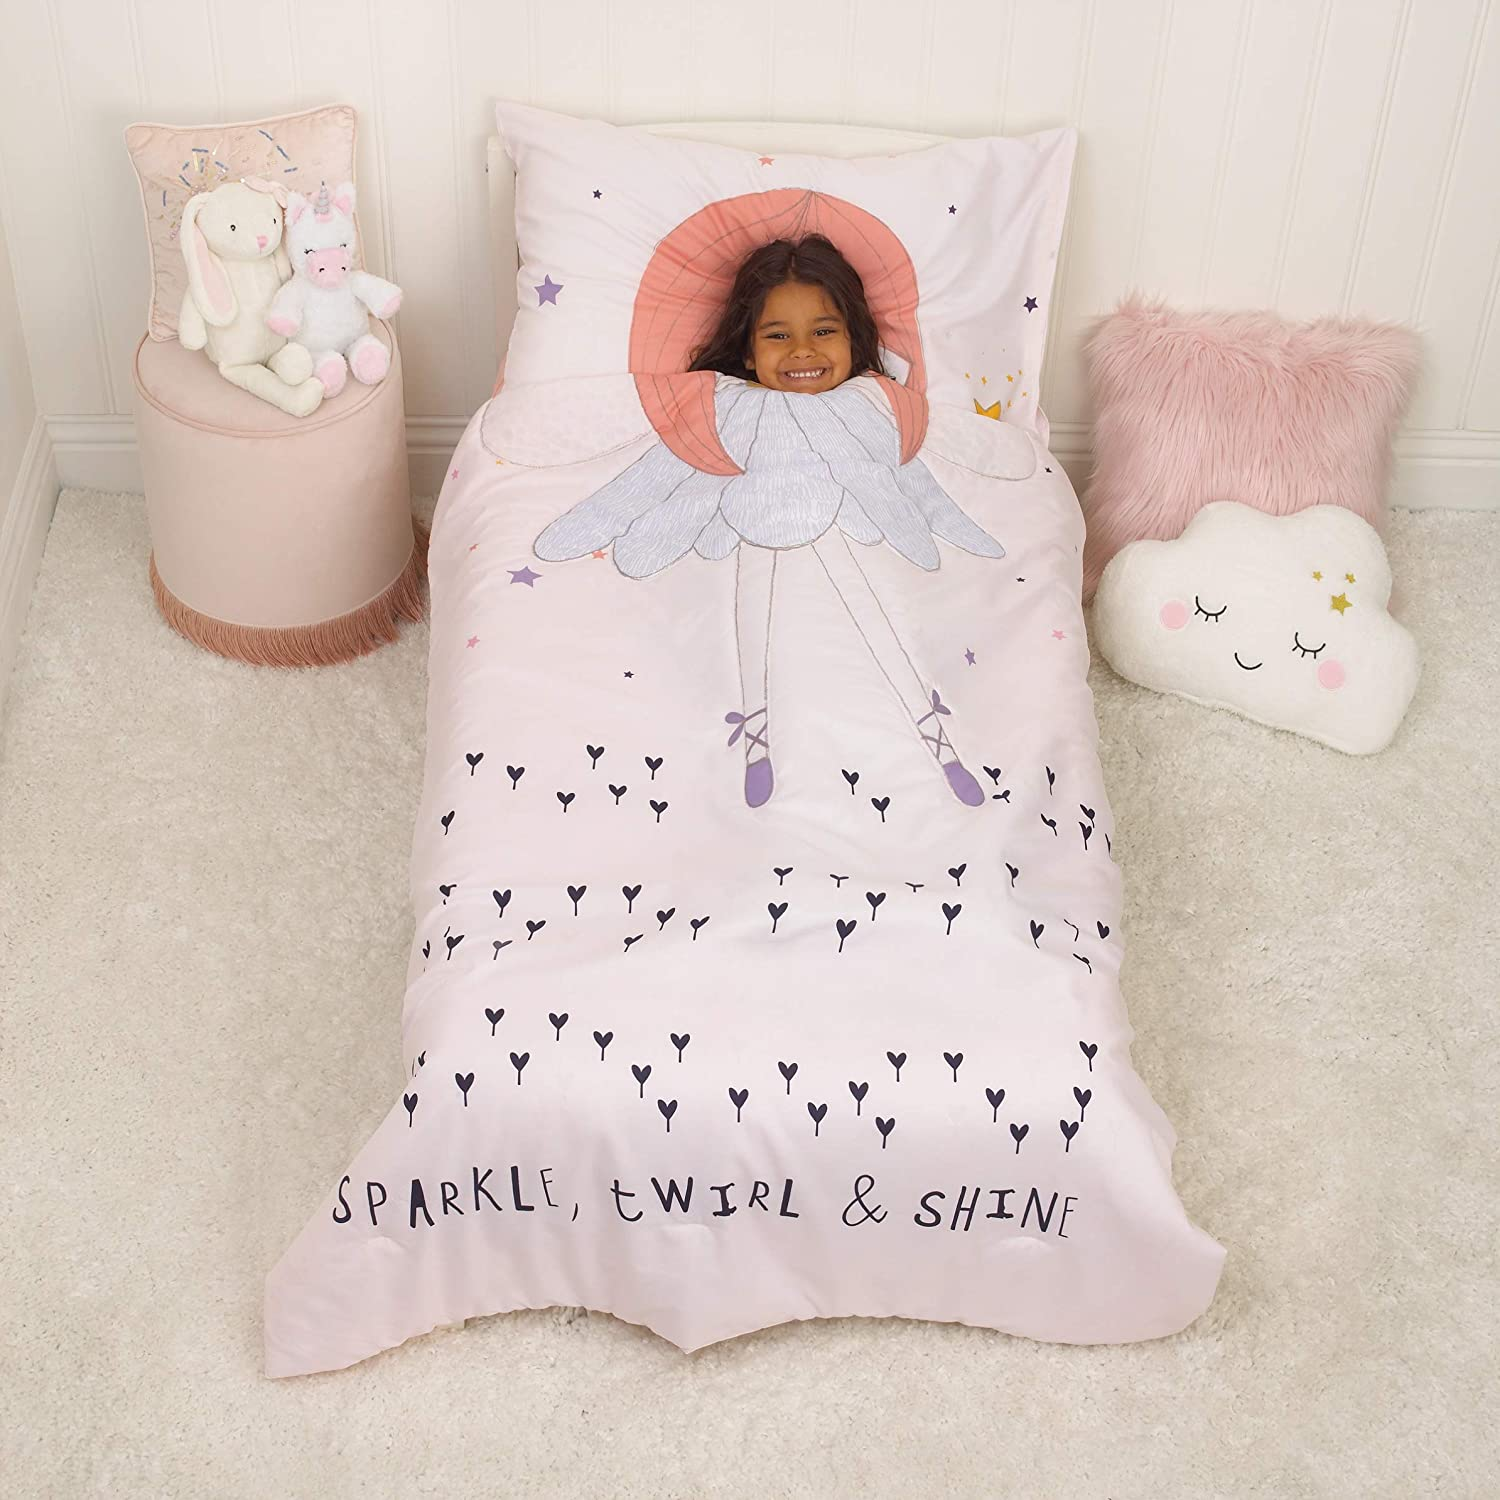 Everything Kids Glow in The Dark 4 Piece Toddler Bed Comforter Set, Magical Fairy, Pink/Orange/Lavender/Navy